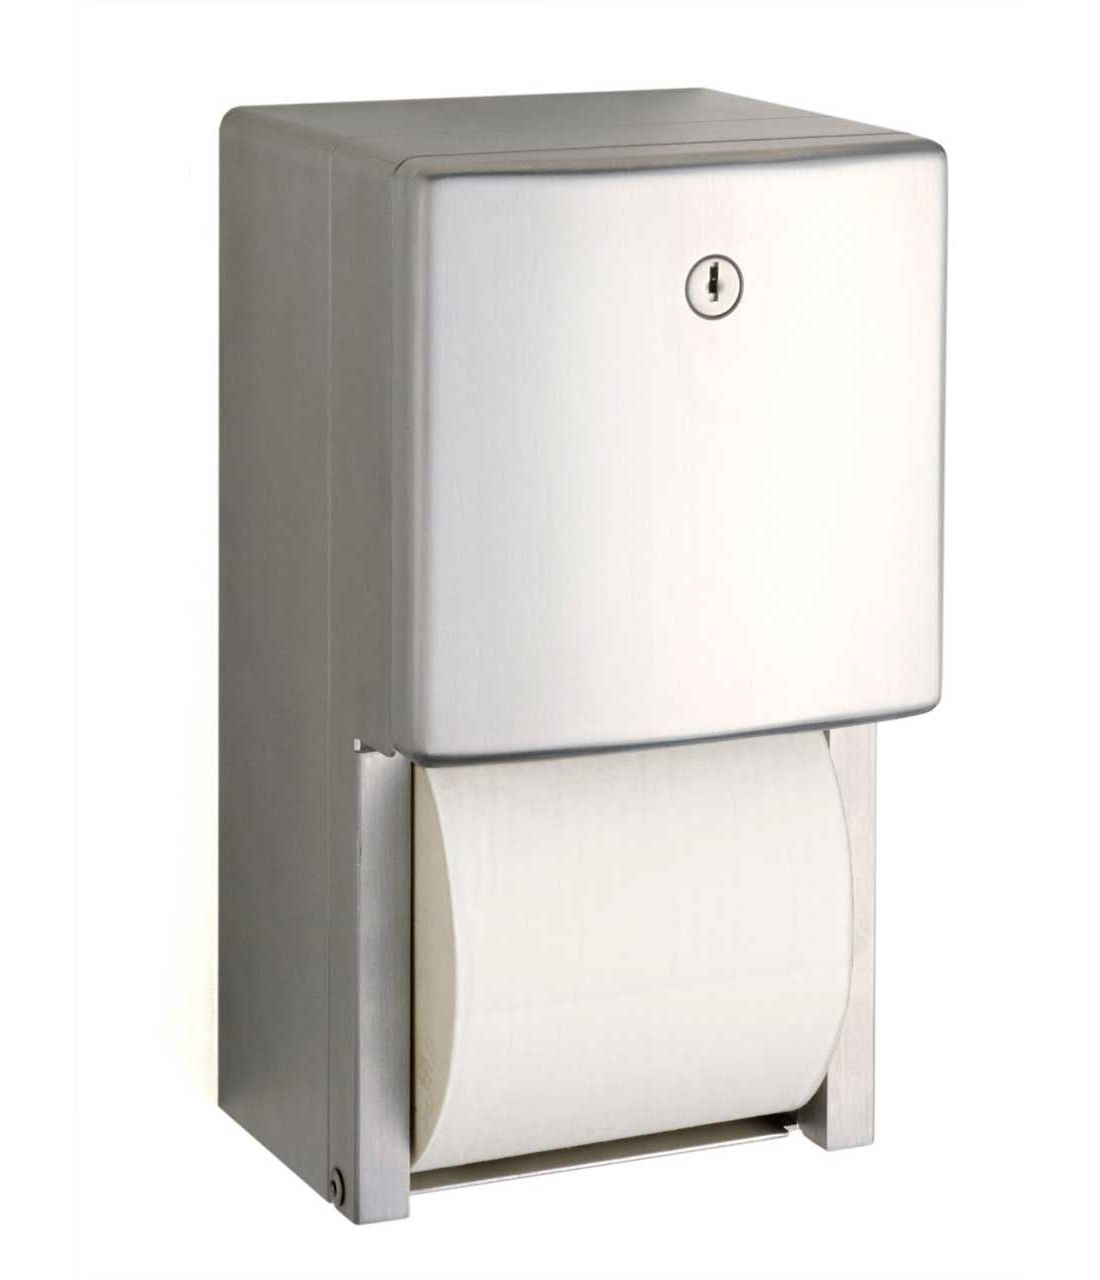 Ada Bathroom Paper Towel Dispenser Height toilet paper dispenser for all stalls in men's and women's